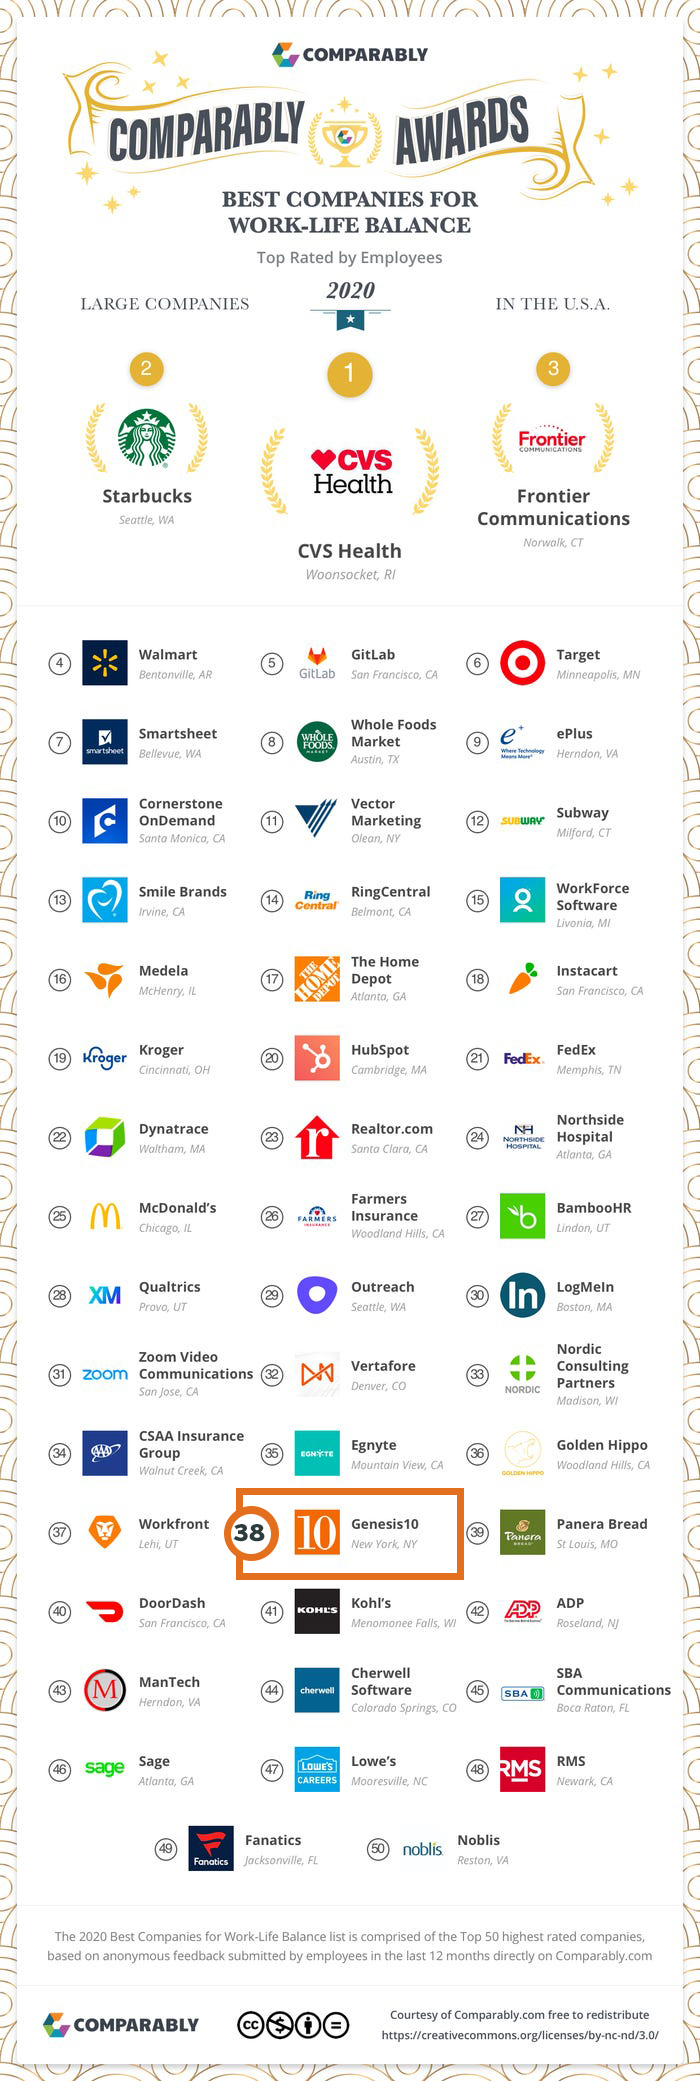 Comparably - Best Companies for Work-Life Balance